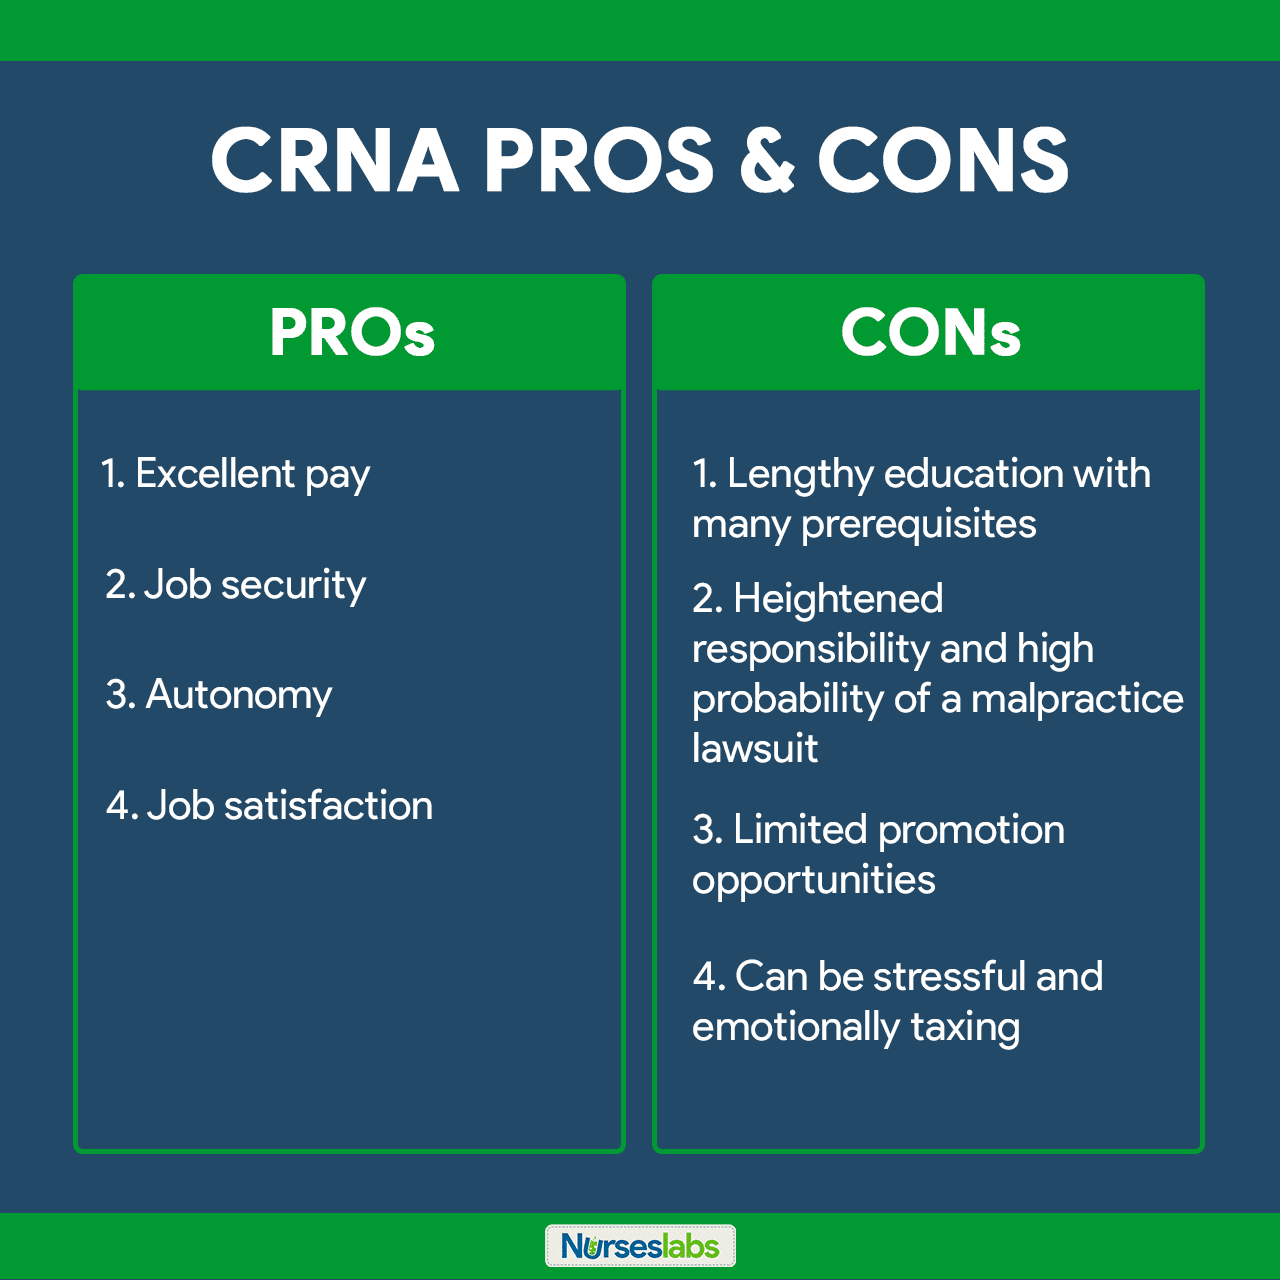 The Pros and Cons of CRNA